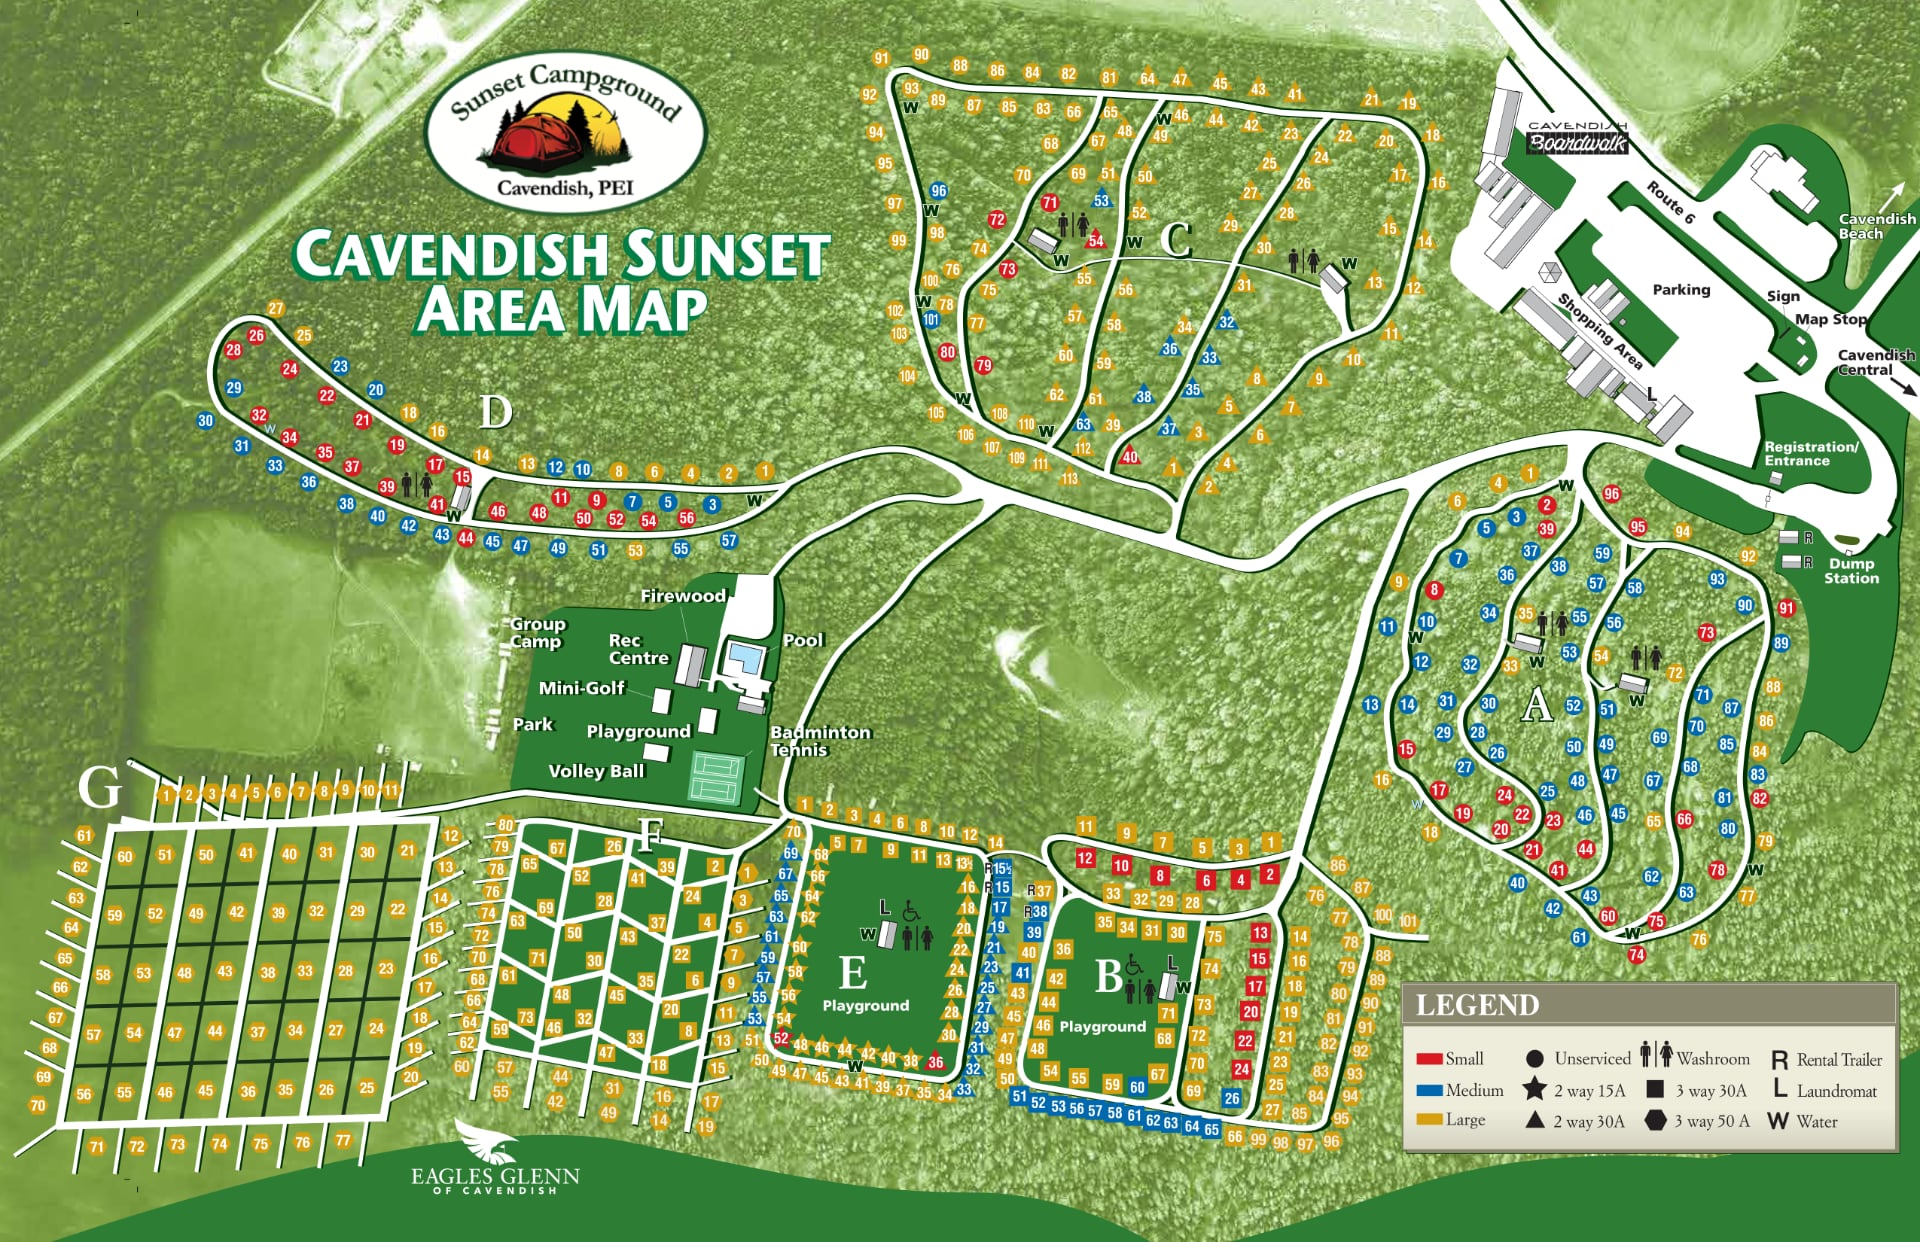 Sunset Campground Cavendish Map